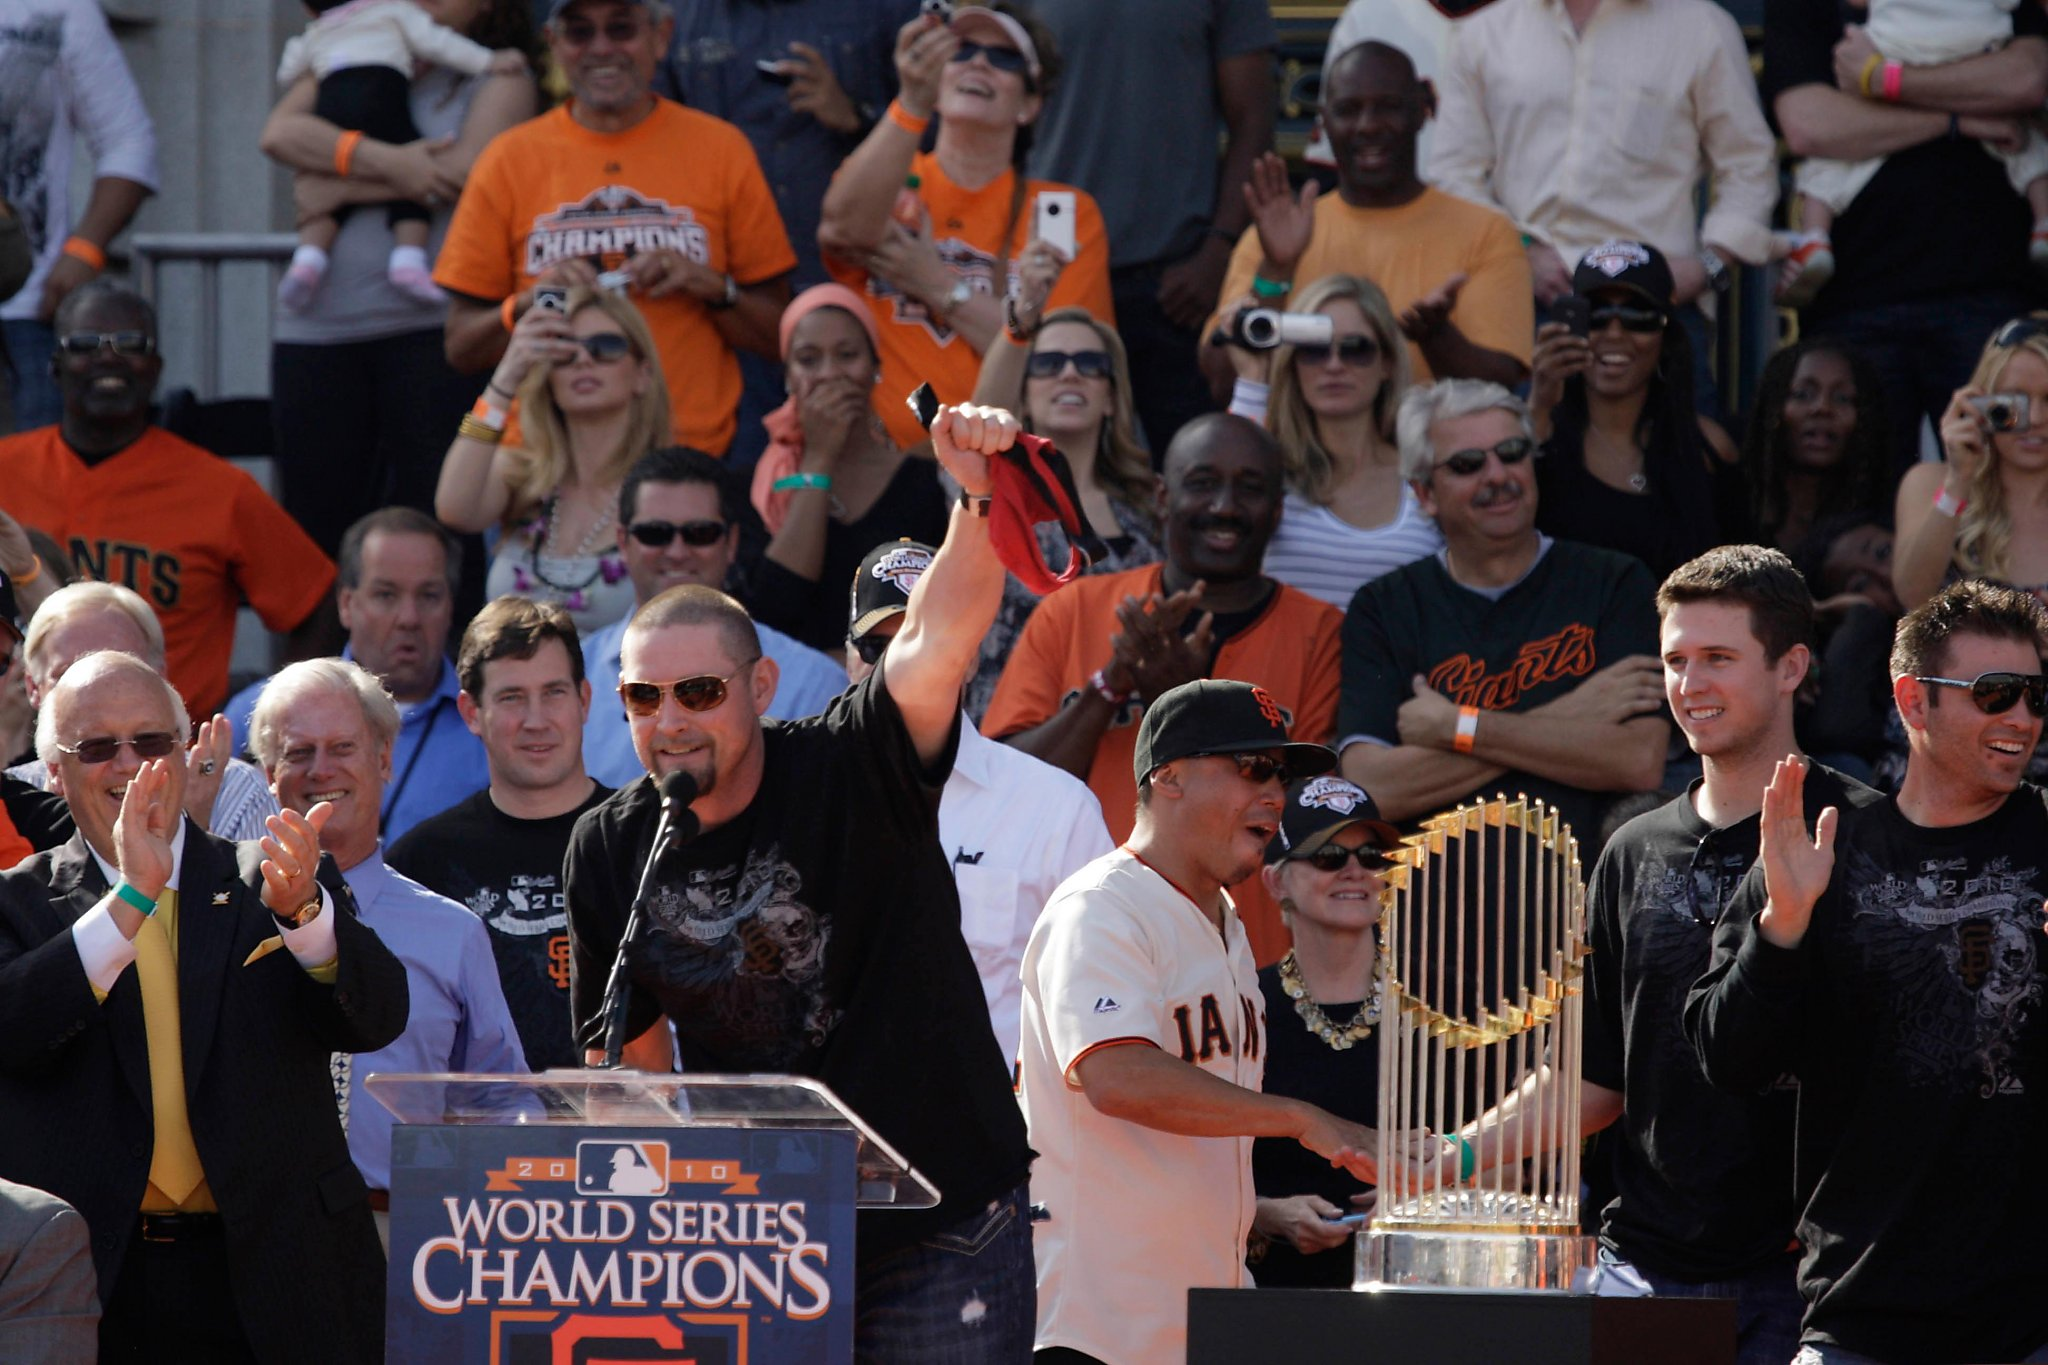 Giants take a stand against Aubrey Huff's misogyny and hate speech